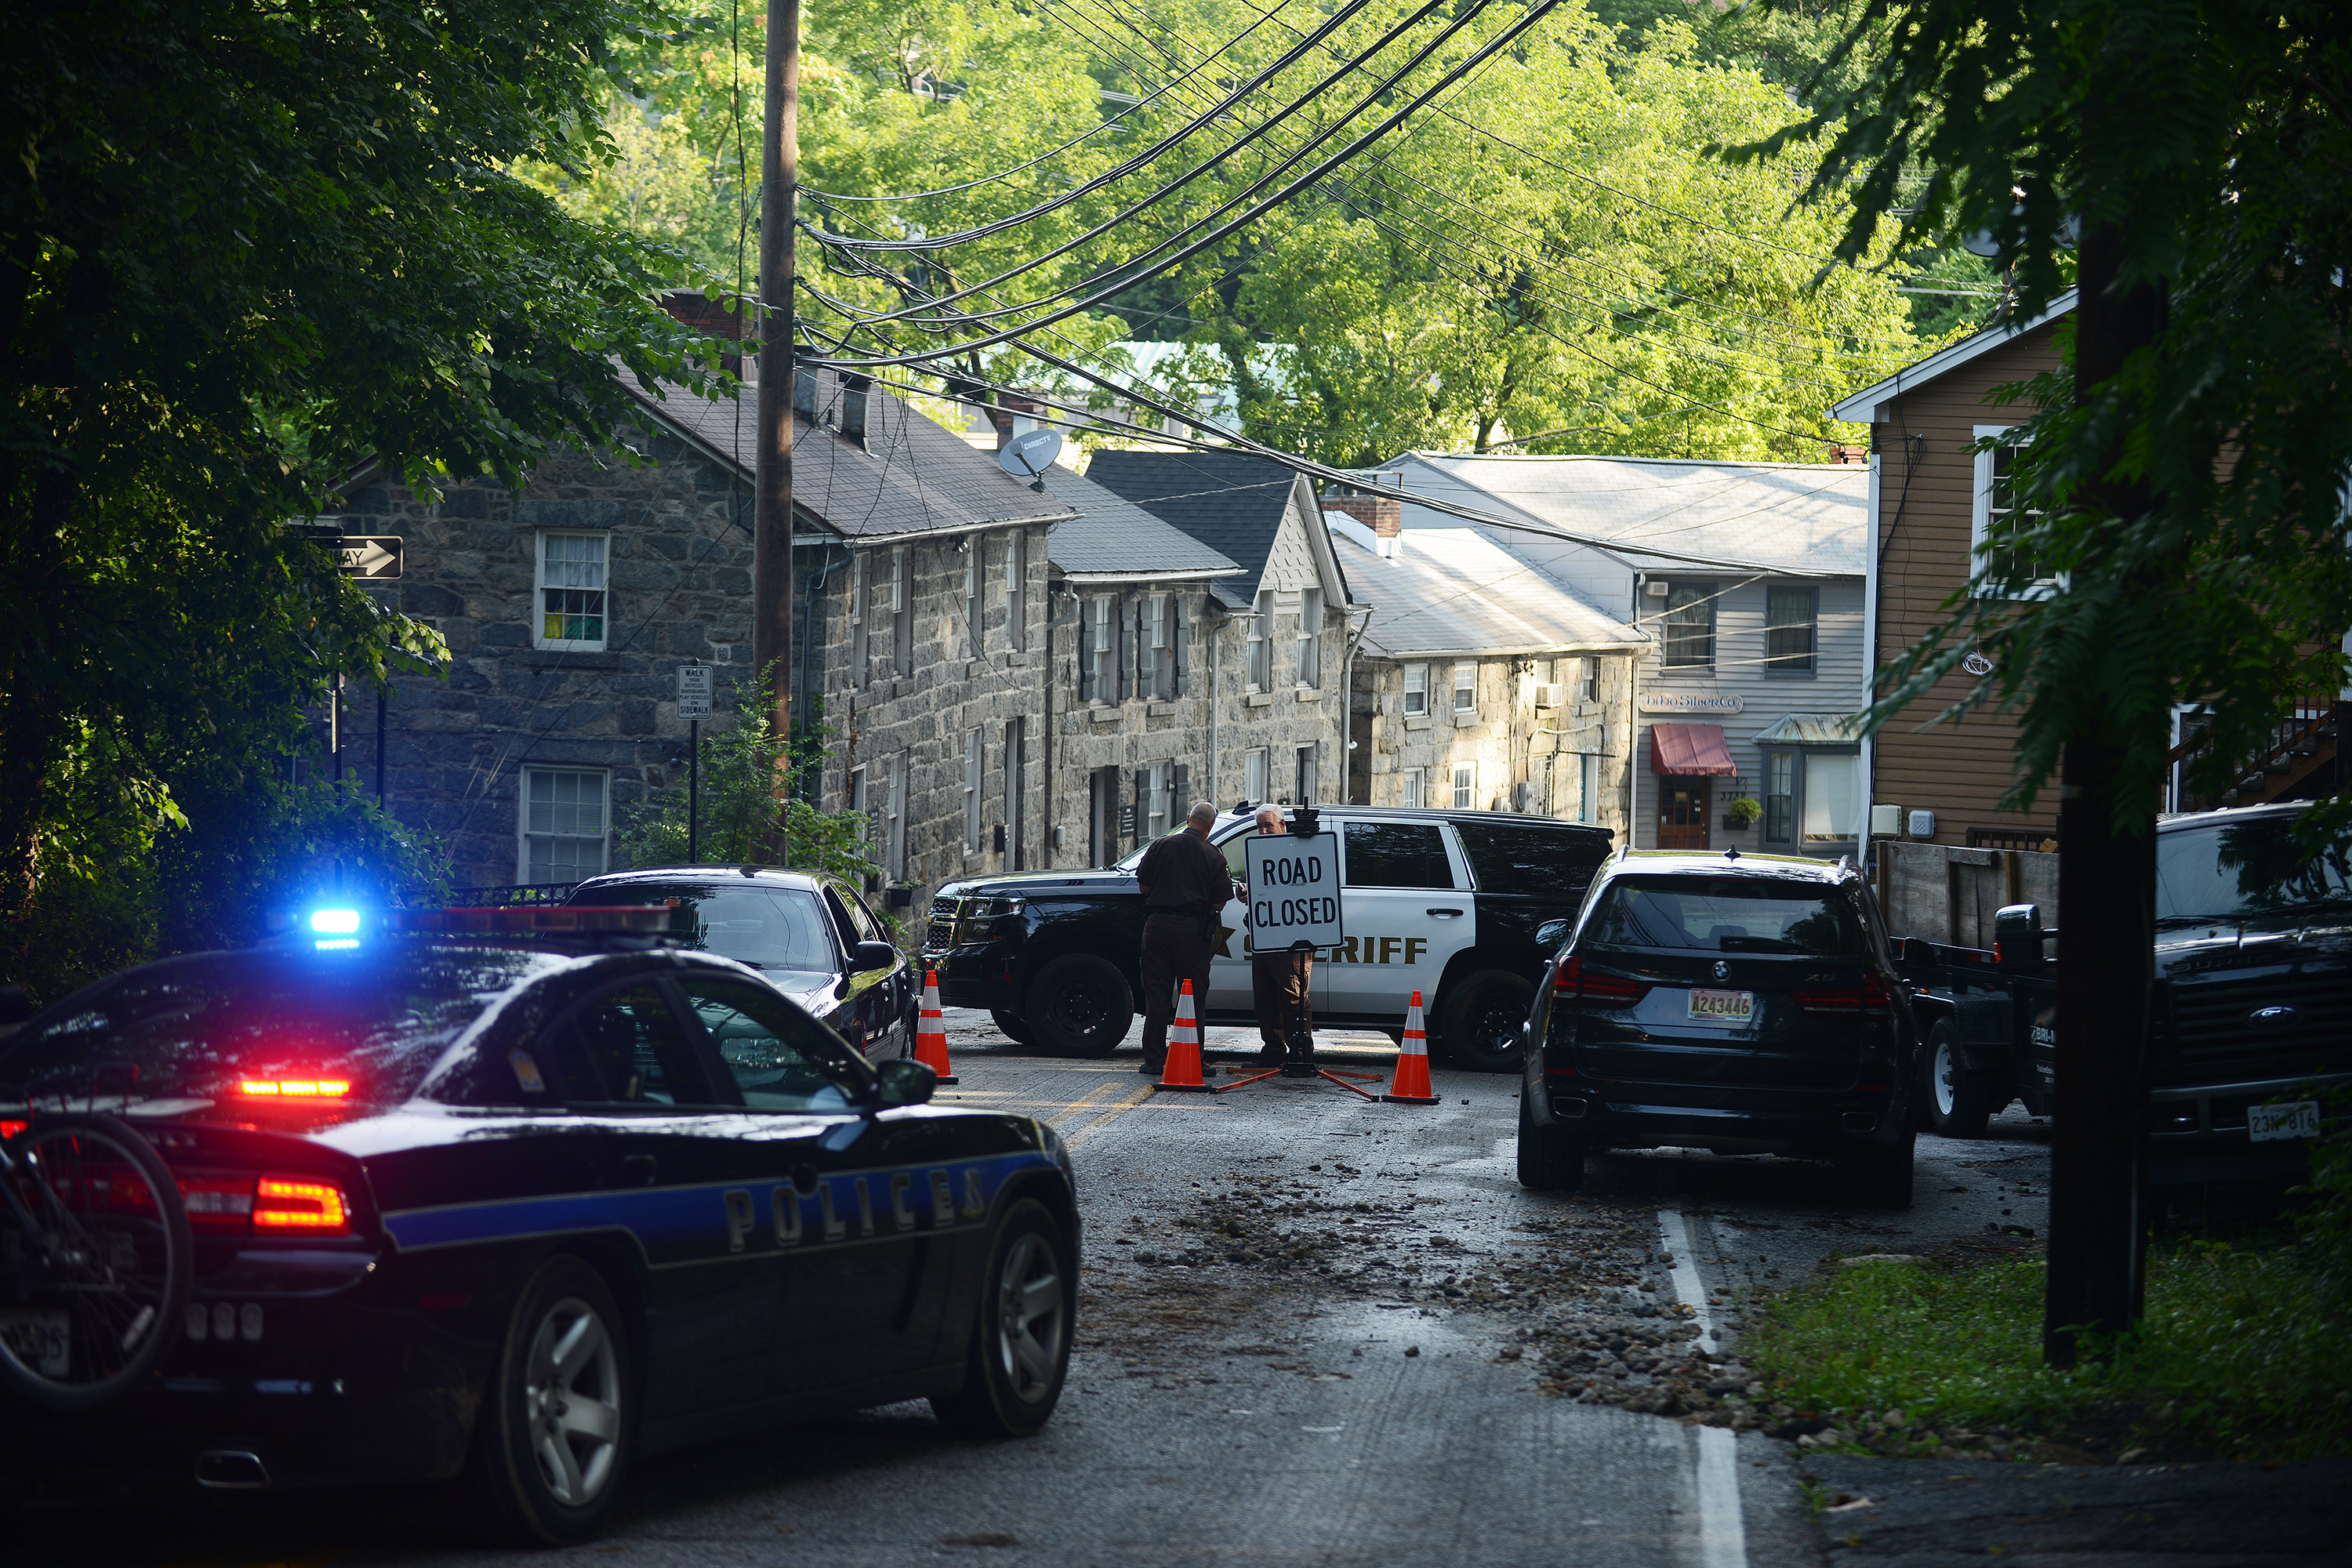 ELLICOTT CITY, MD - JULY 31: Police close streets into Elliott